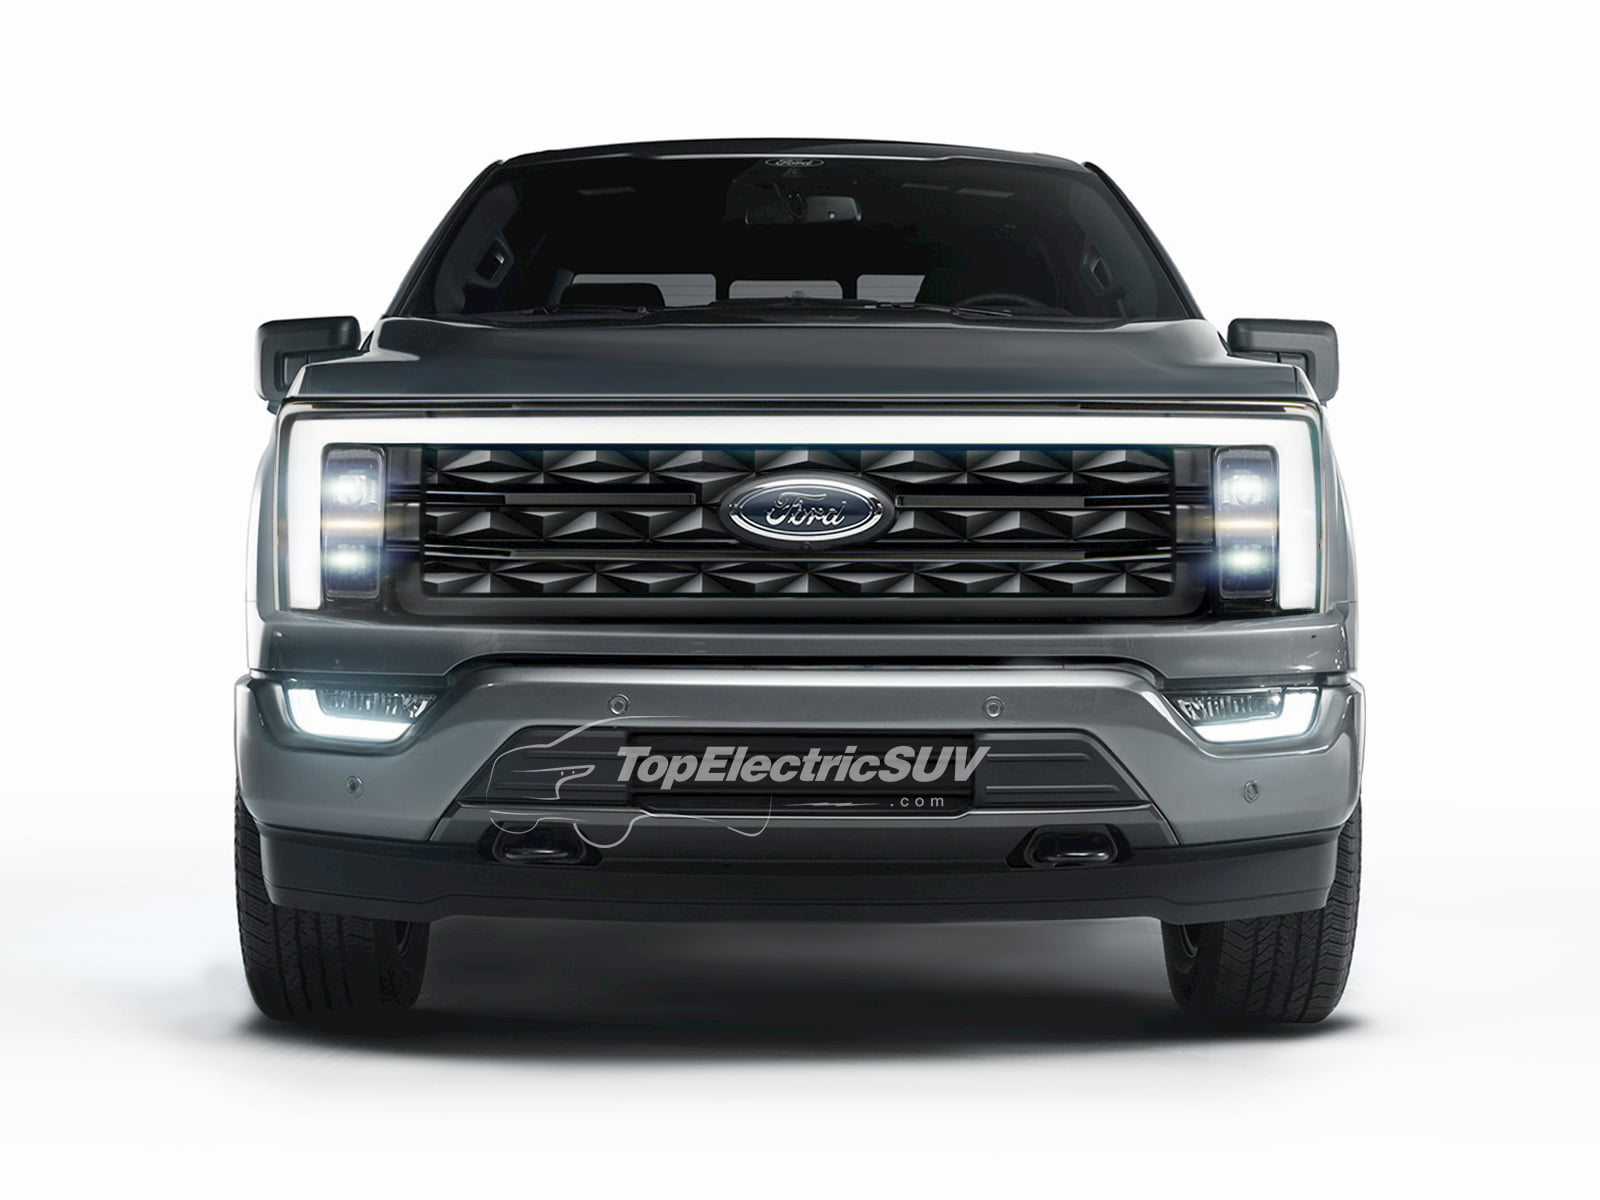 Ford F-150 Electric rendering topelectricsuv.com